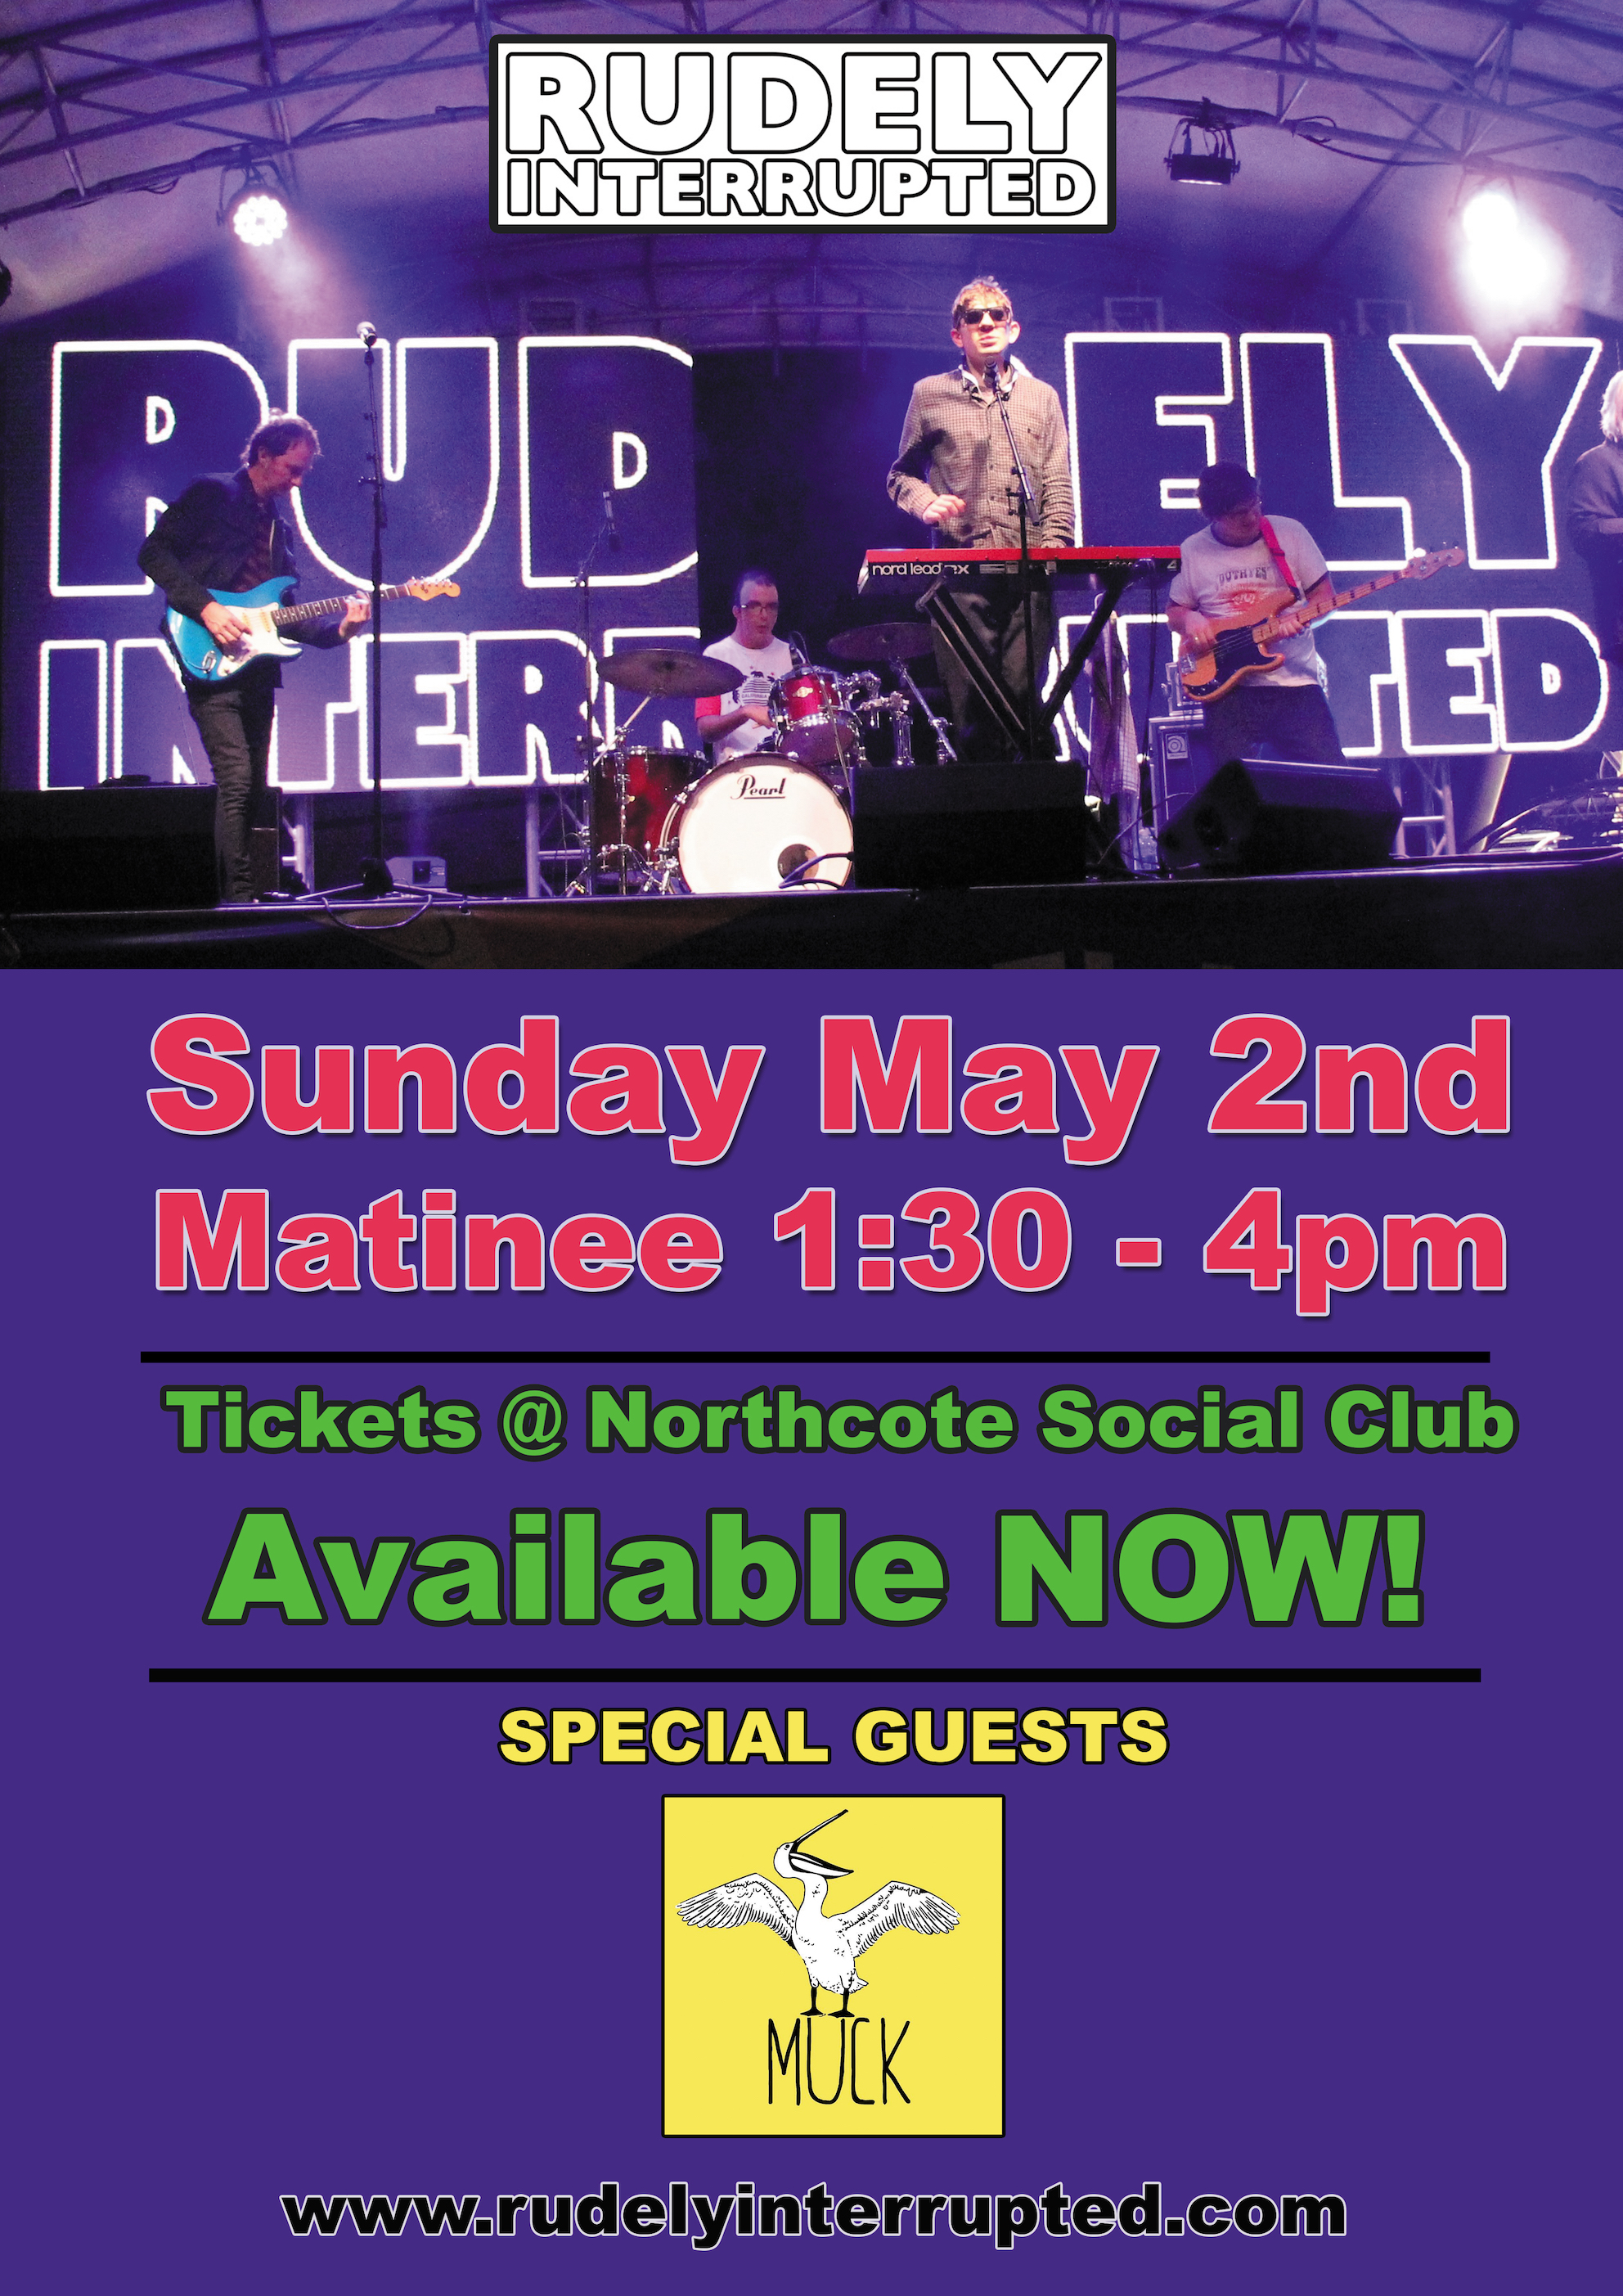 Rudely Interrupted Live @ the Northcote Social Club May 2nd Matinee 1:30-4pm